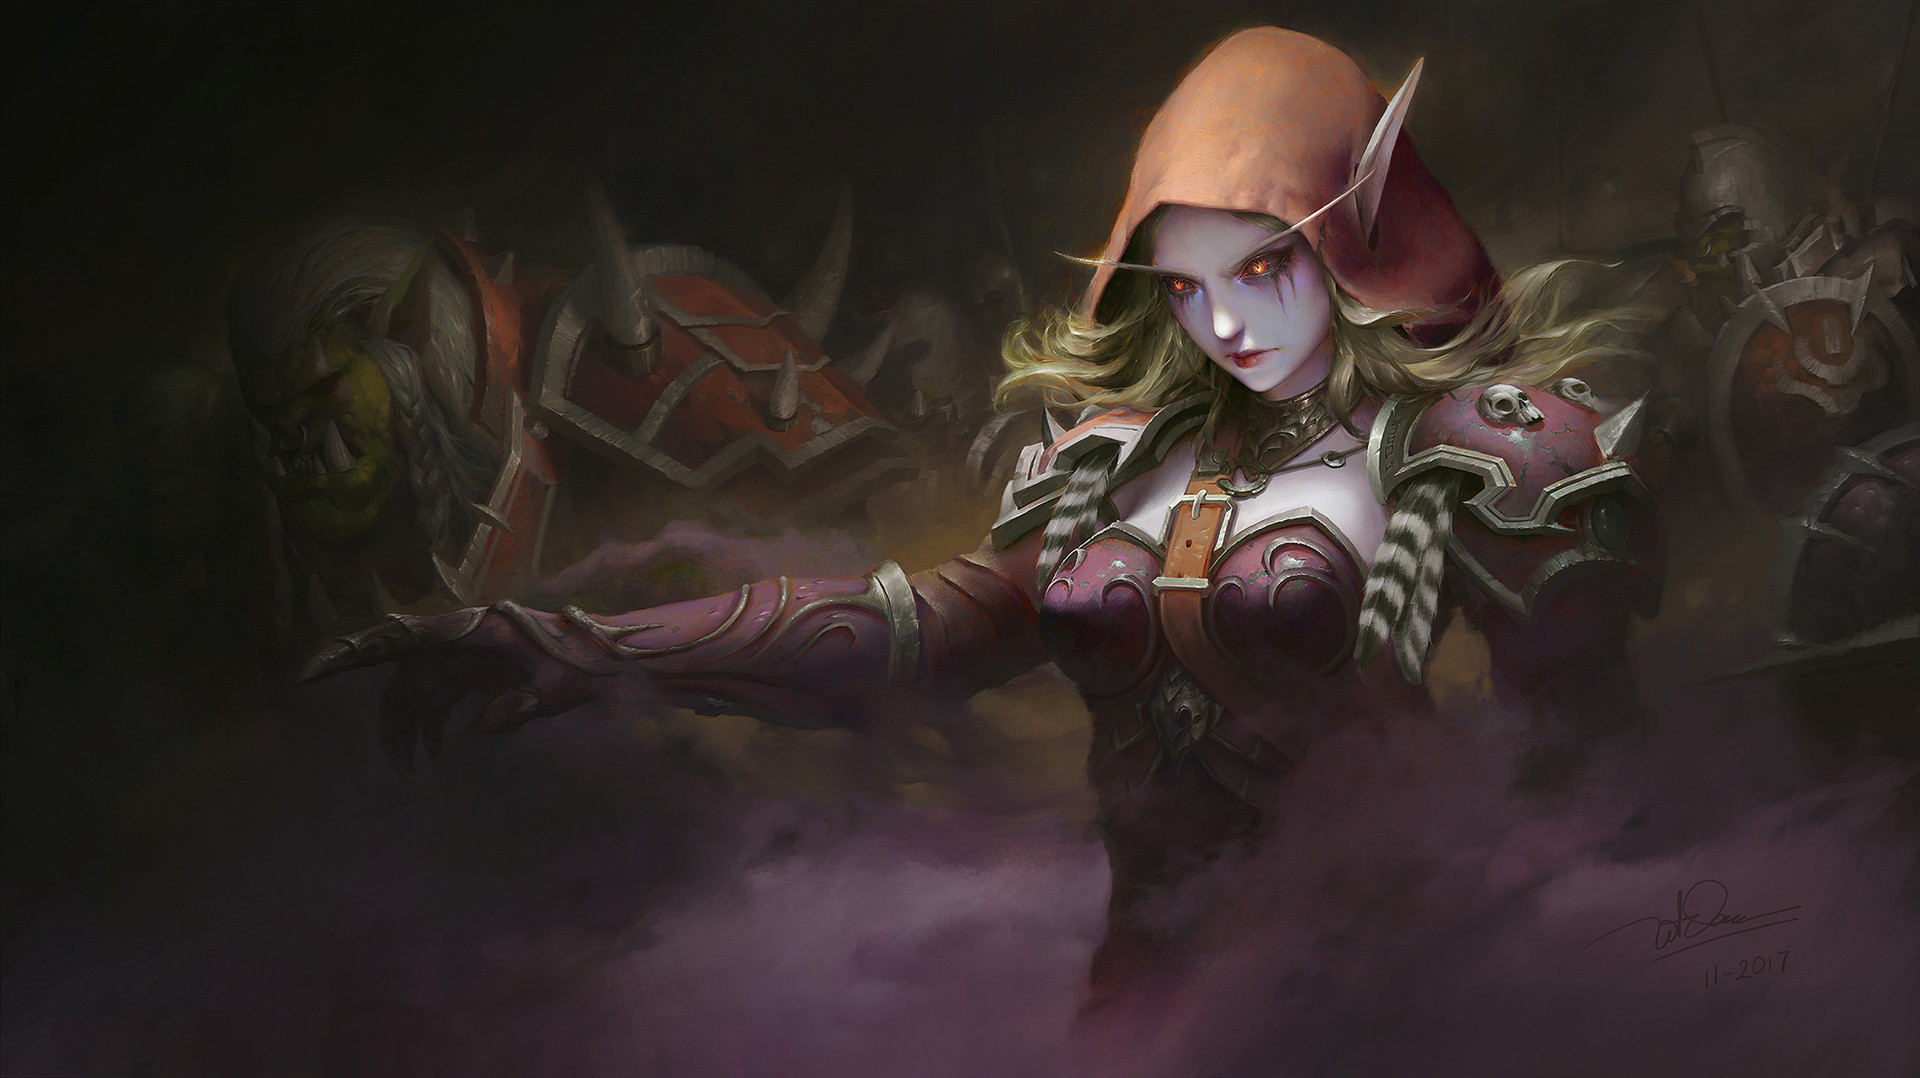 Sylvanas wallpaper and background image 1920x1078 id 882997 wallpaper abyss - Sylvanas windrunner wallpaper ...